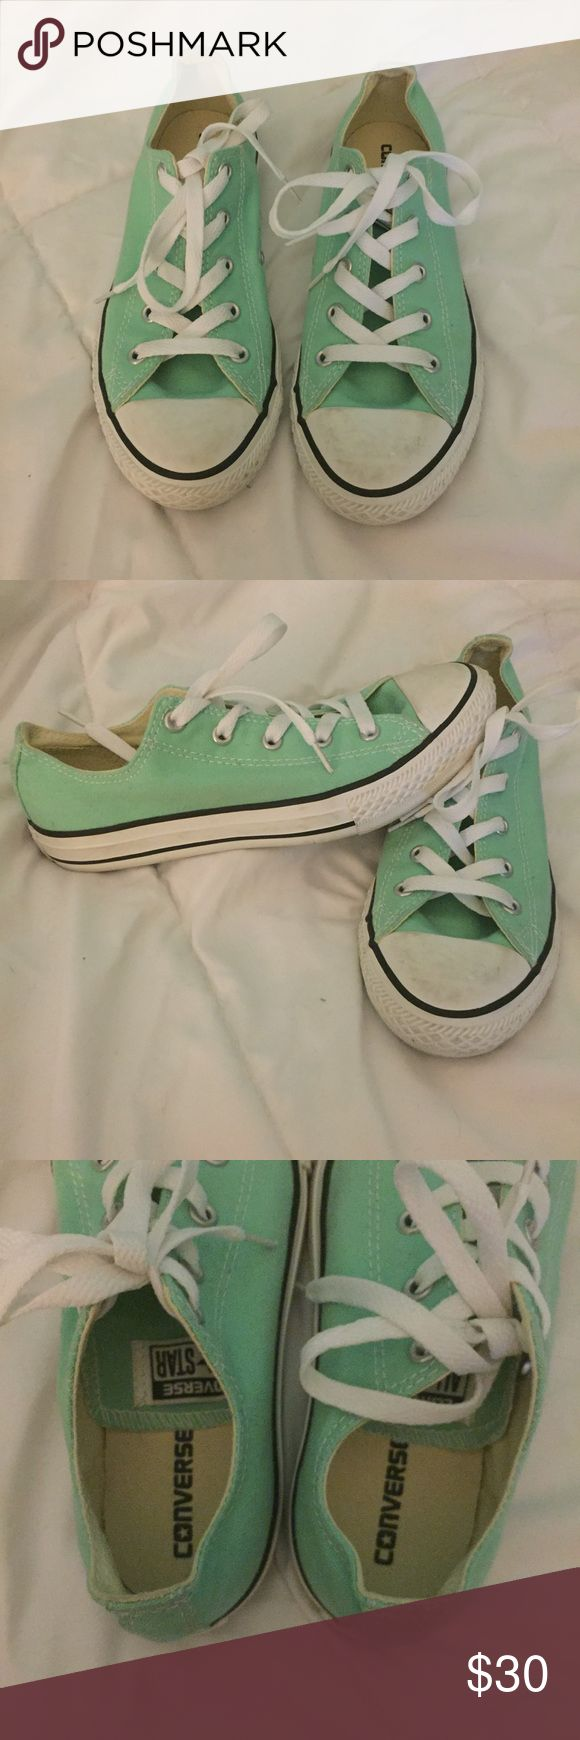 Teal converse Worn once or twice, great condition! Converse Shoes Sneakers